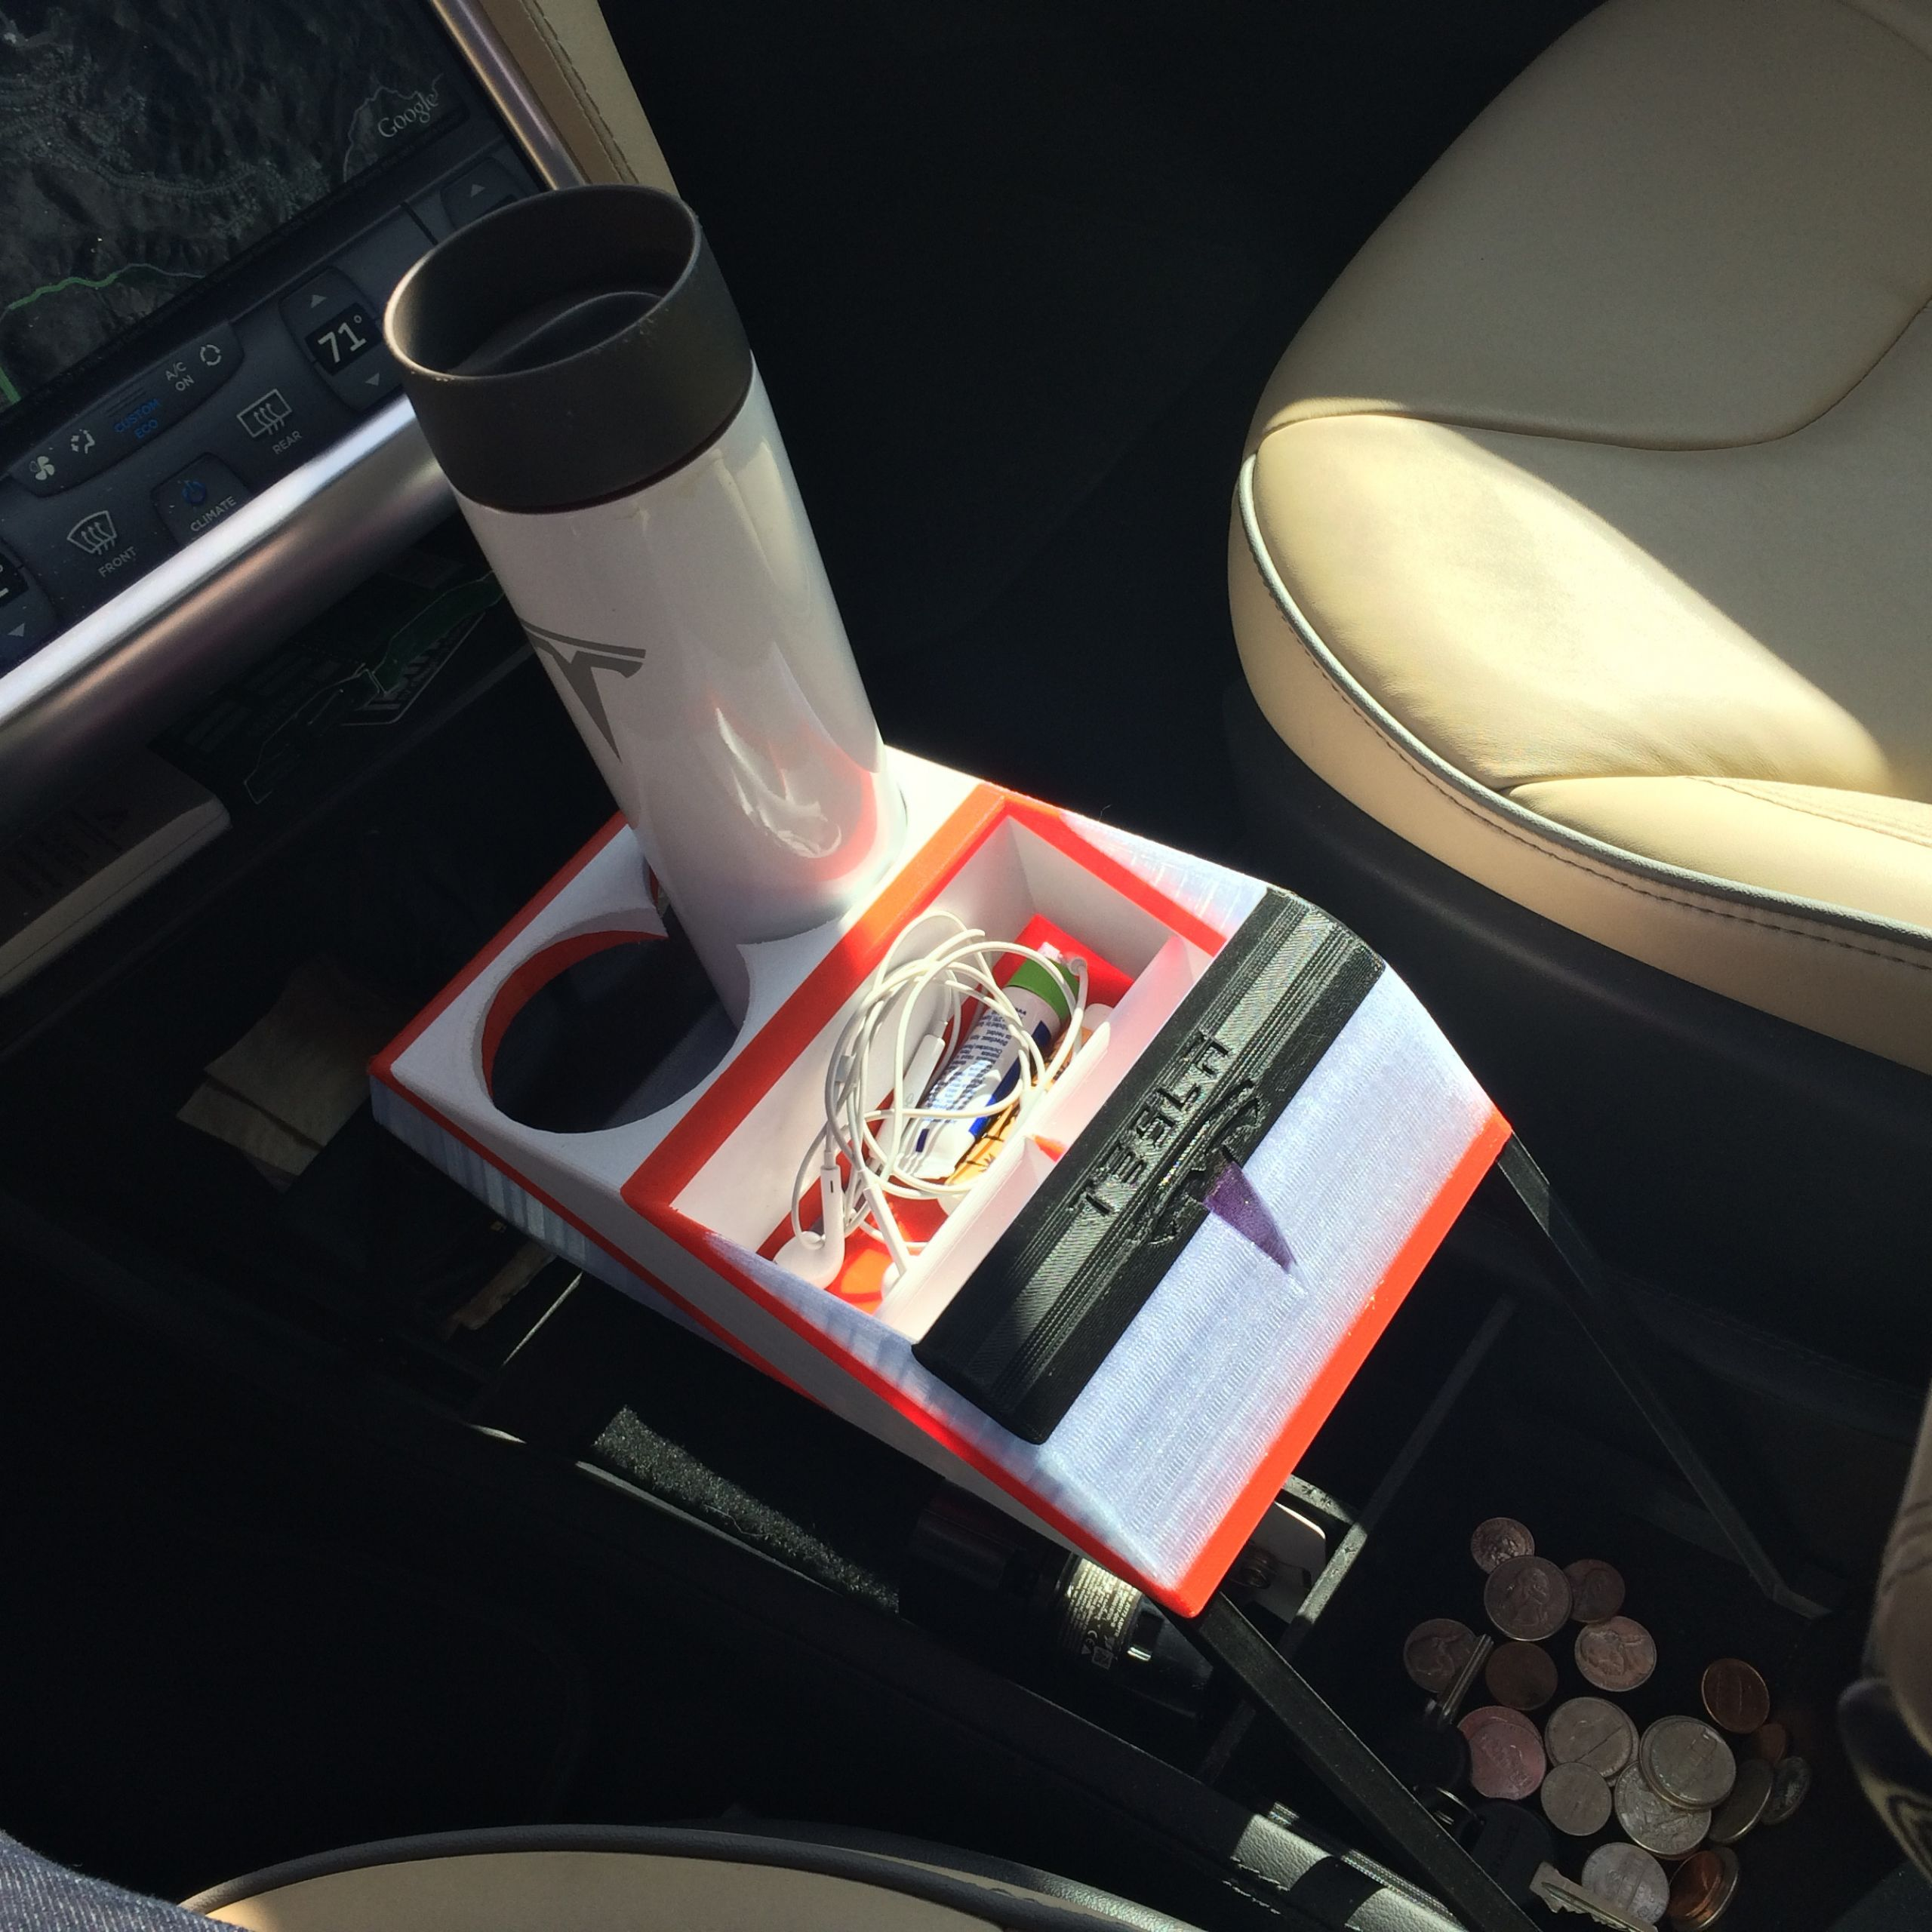 Tesla Model S Elegant Tesla Model S Center Console by Oleeichhorn Thingiverse